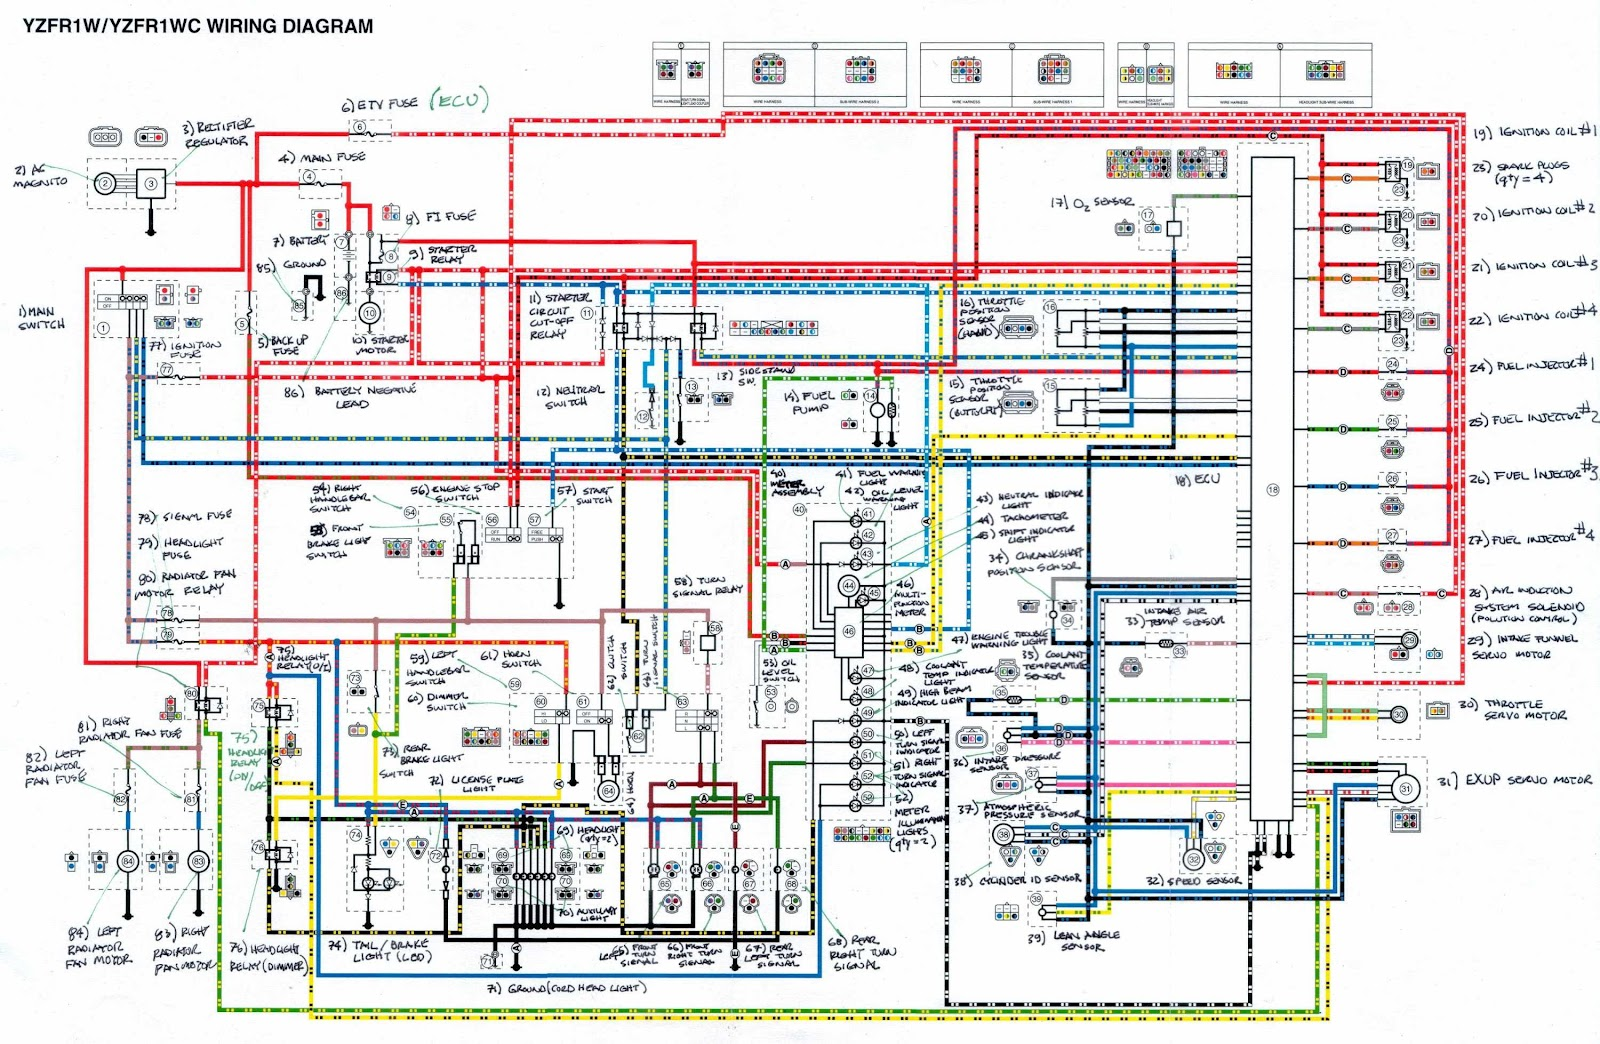 Yamaha+YZF R1+Motorcycle+Wiring+Diagram yamaha blaster wiring diagram the wiring diagram readingrat net ttr 250 wiring diagram at gsmx.co